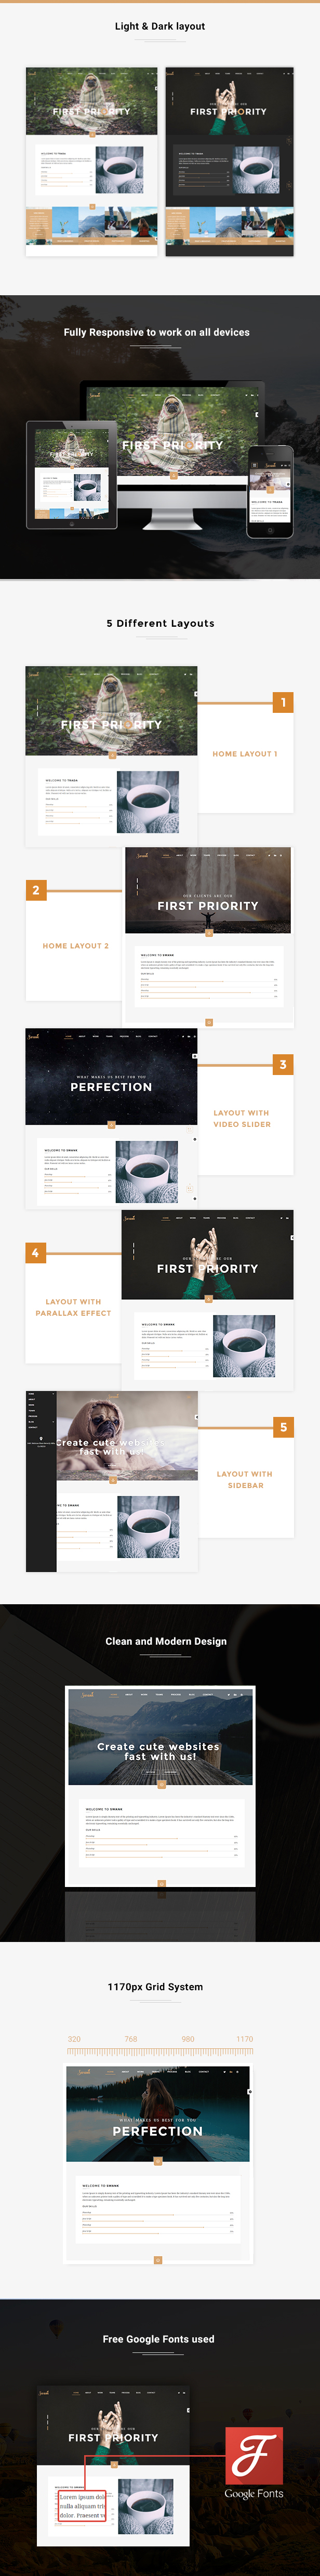 Swank - Creative One Page with Blog template by venbradshaw ...